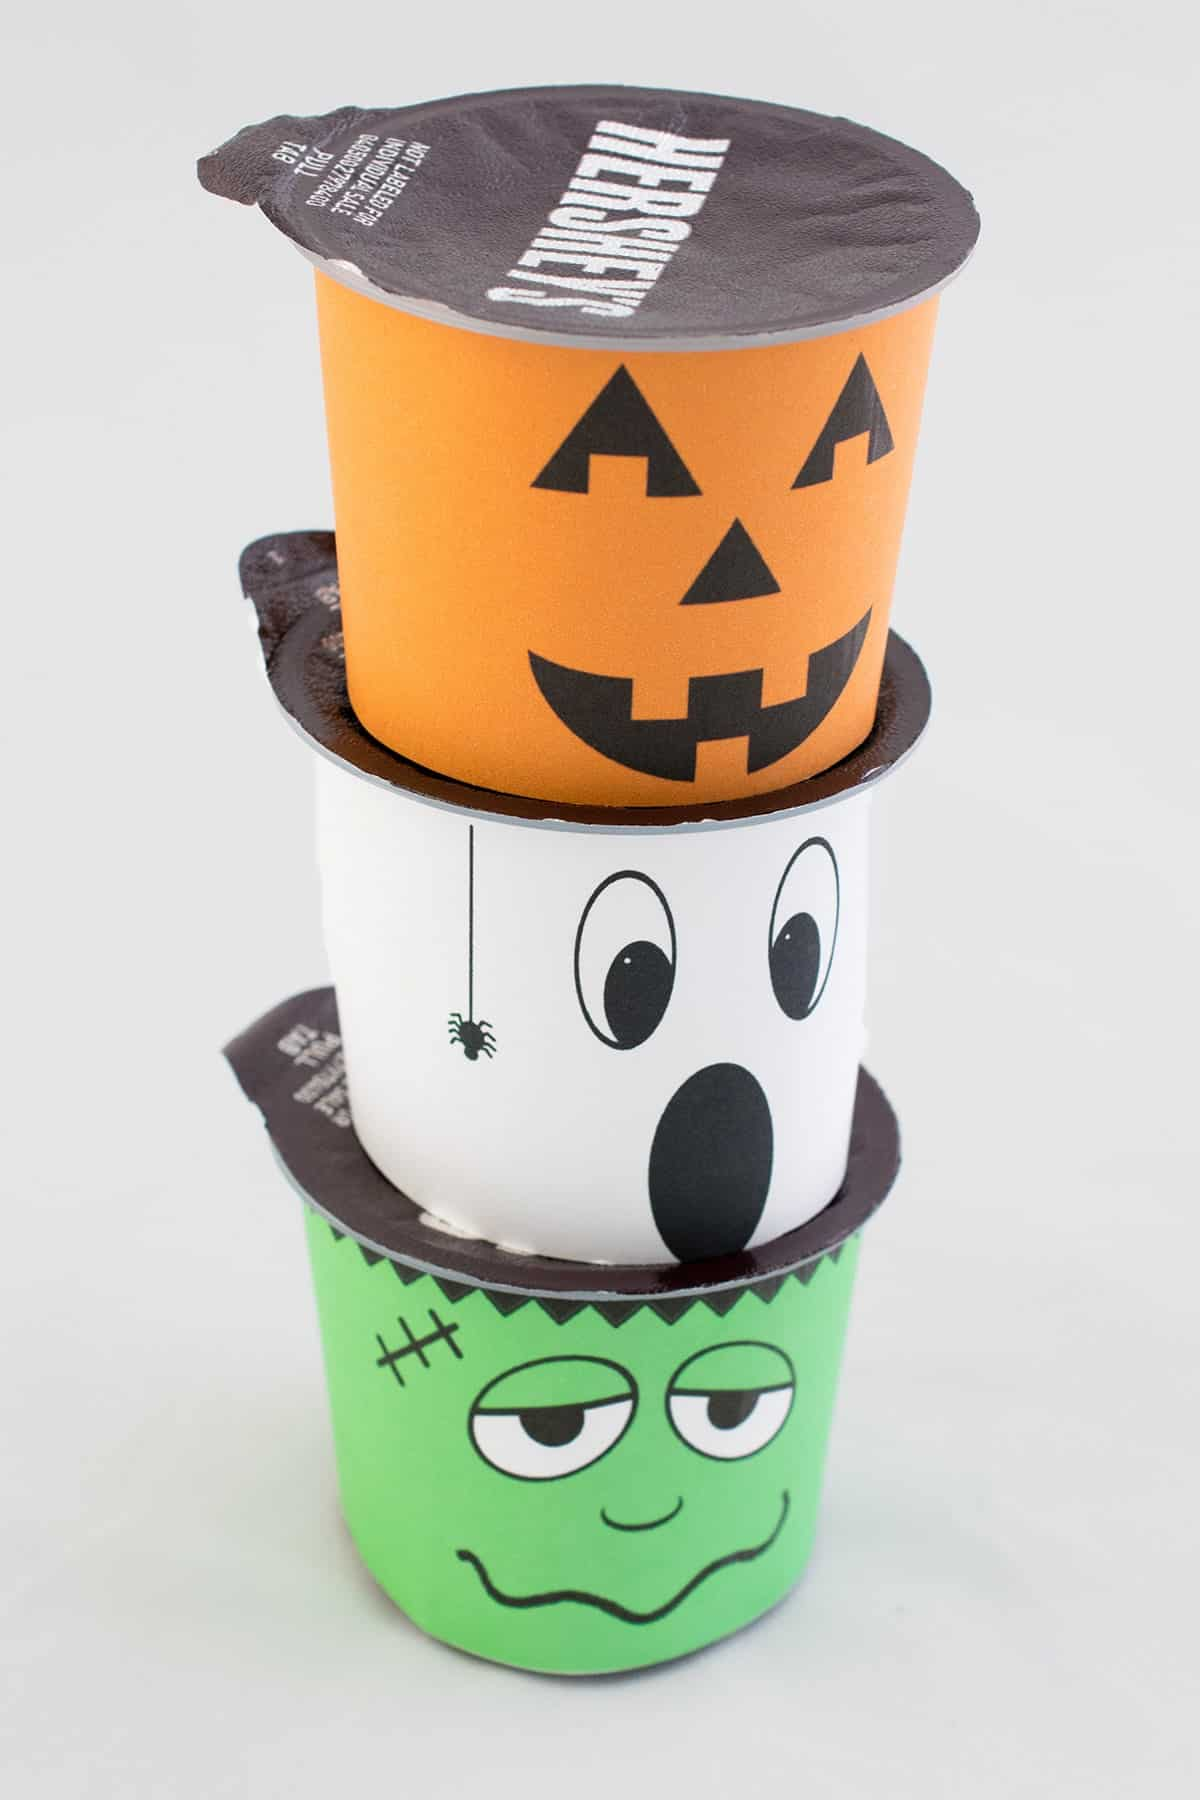 Three stacked Hershey's pudding cups with Halloween printable wrappers-Frankenstein, ghost, and pumpkin with white background.